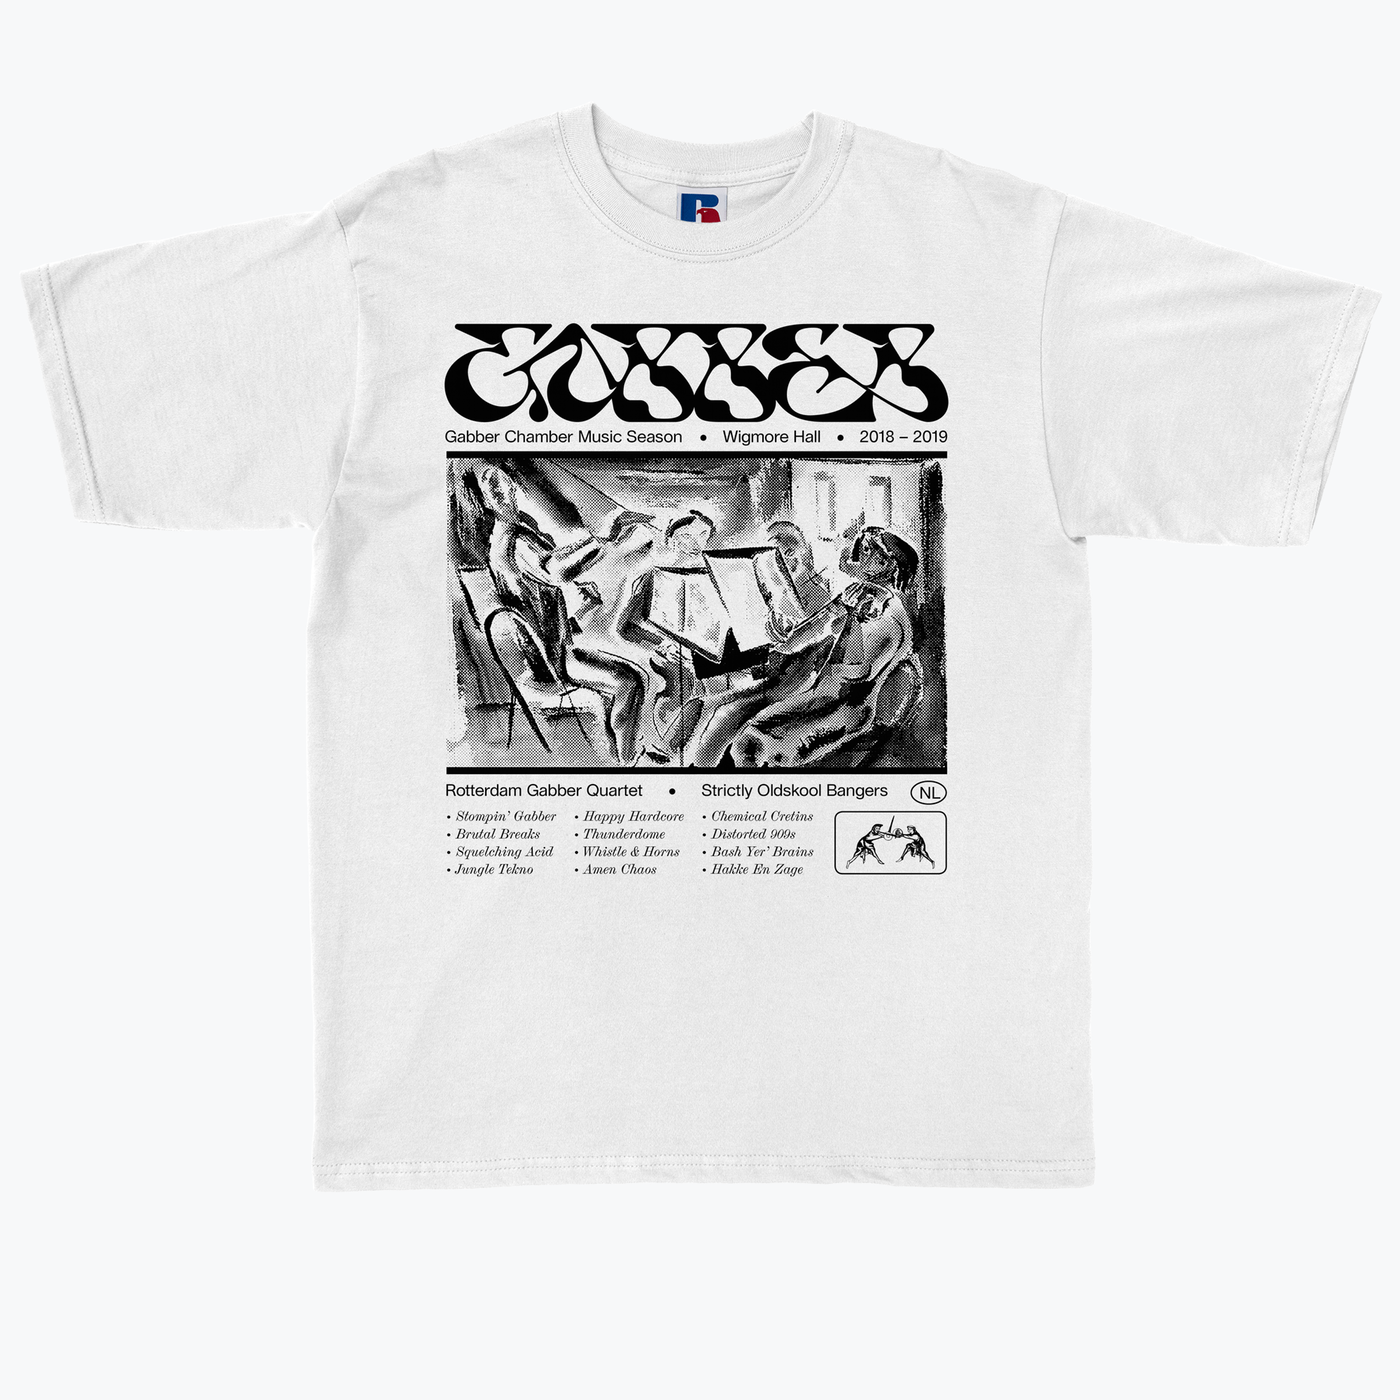 Jacob Wise's 'Gabber Chamber Music' T-shirt design as part of Type In Focus